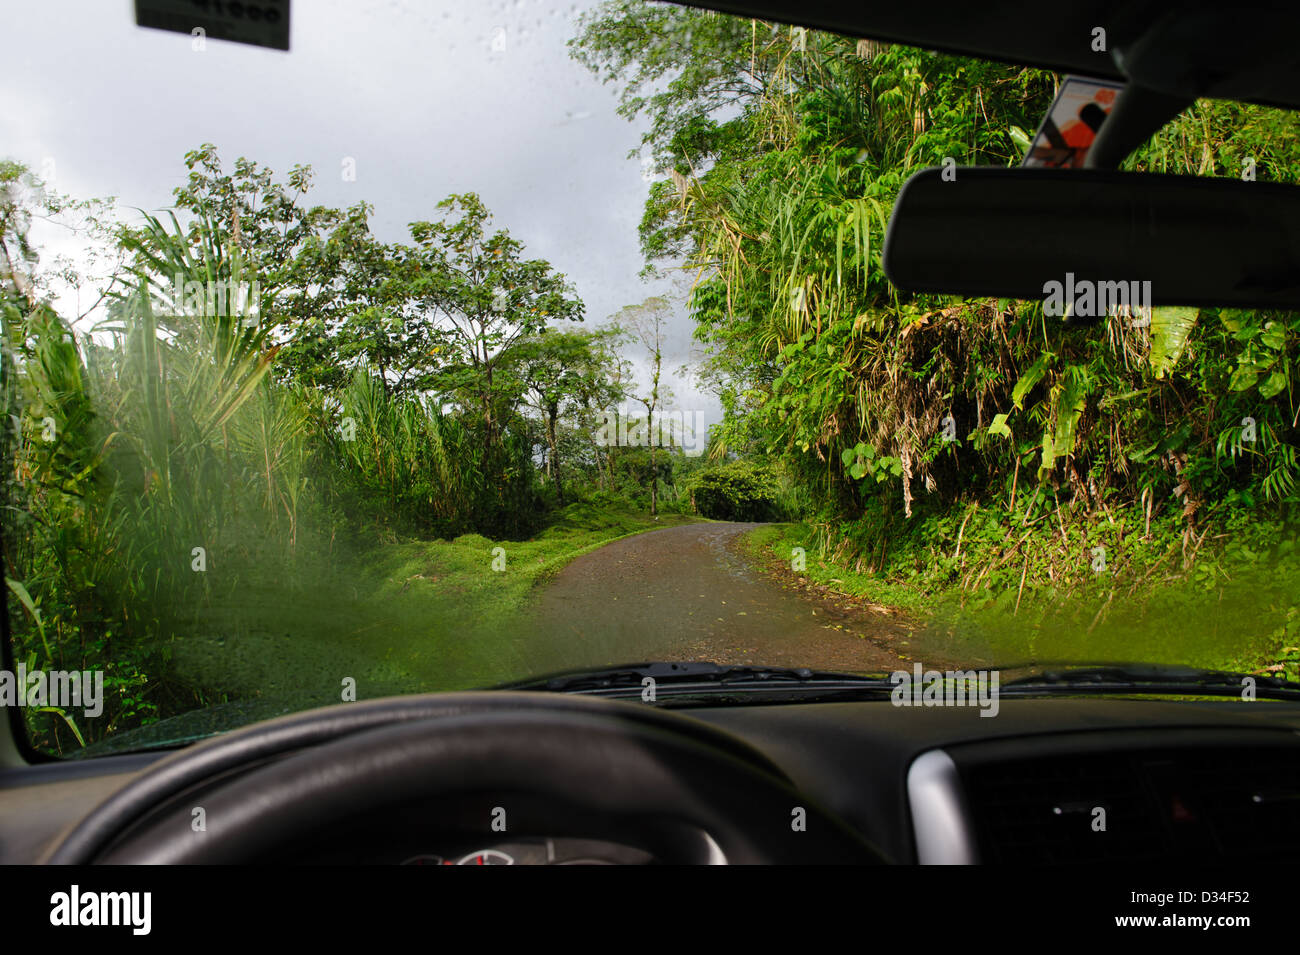 View through the damp windscreen of a car on a dirt road in ' Volcan Arenal National Park'. Costa Rica. - Stock Image